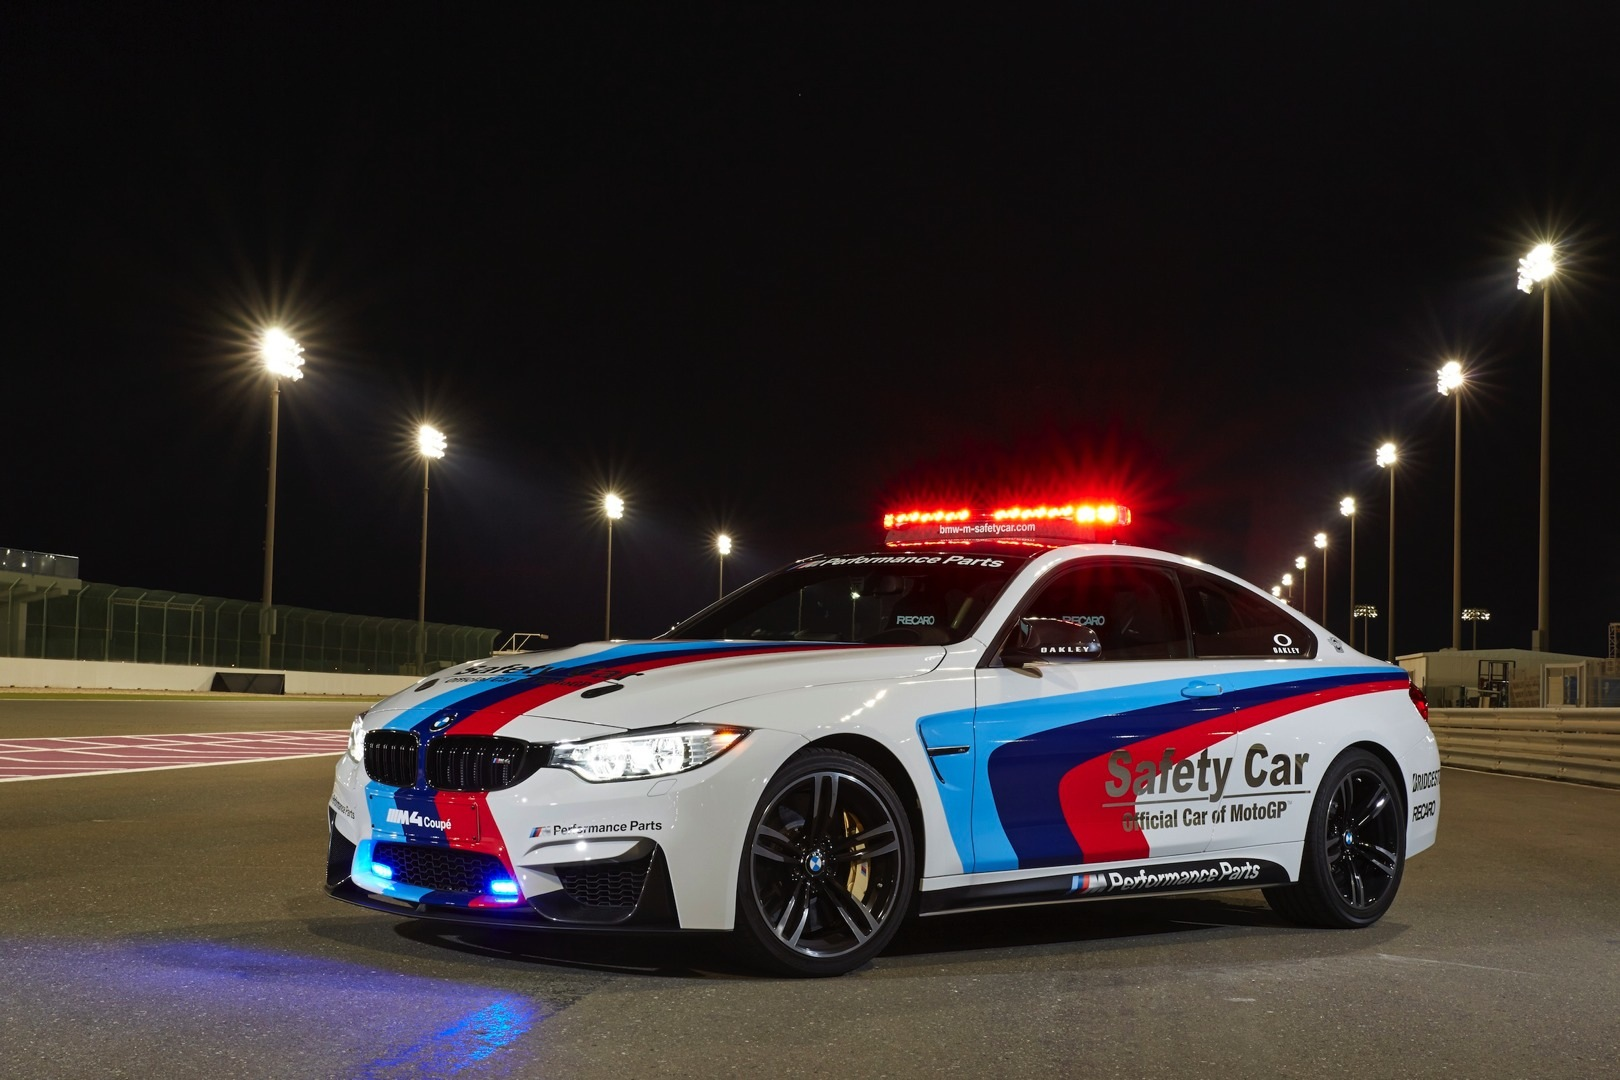 bmw m4 safety car debuts in motogp at qatar grand prix. Black Bedroom Furniture Sets. Home Design Ideas